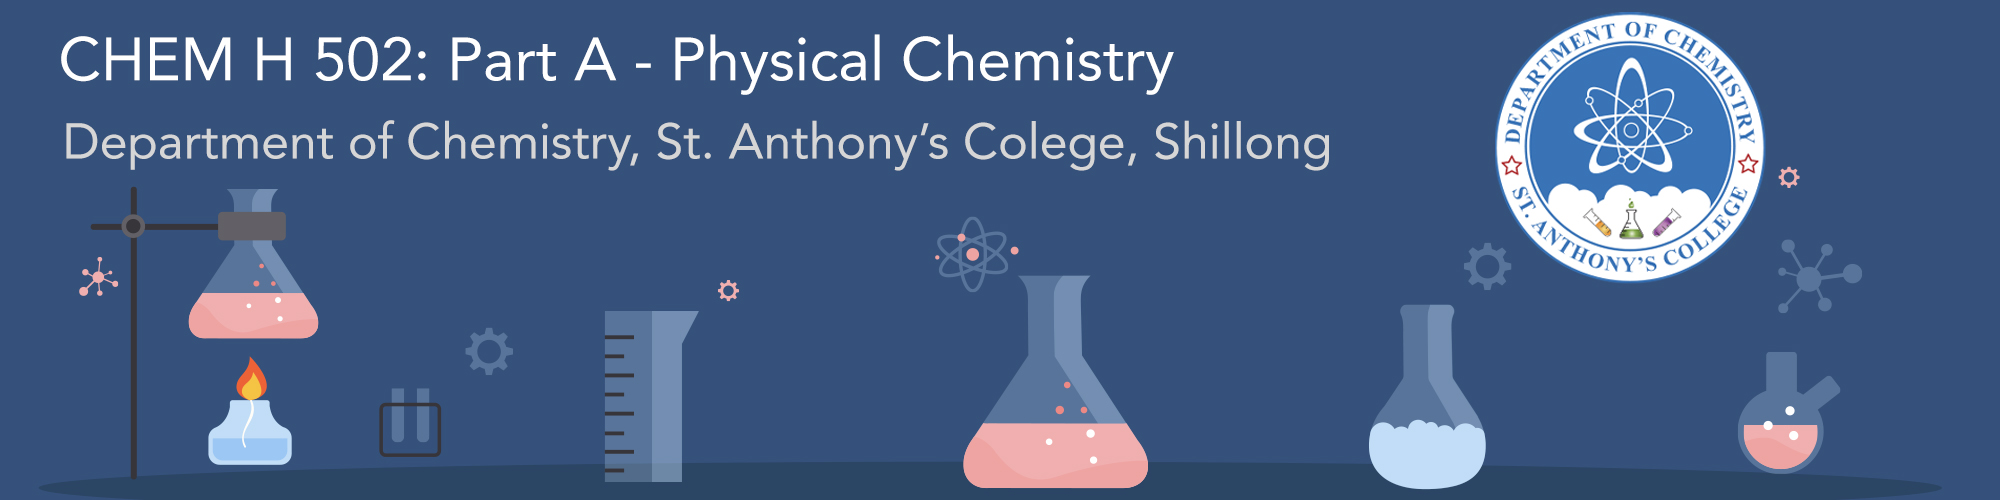 5th Semester Physical Chemistry Theory